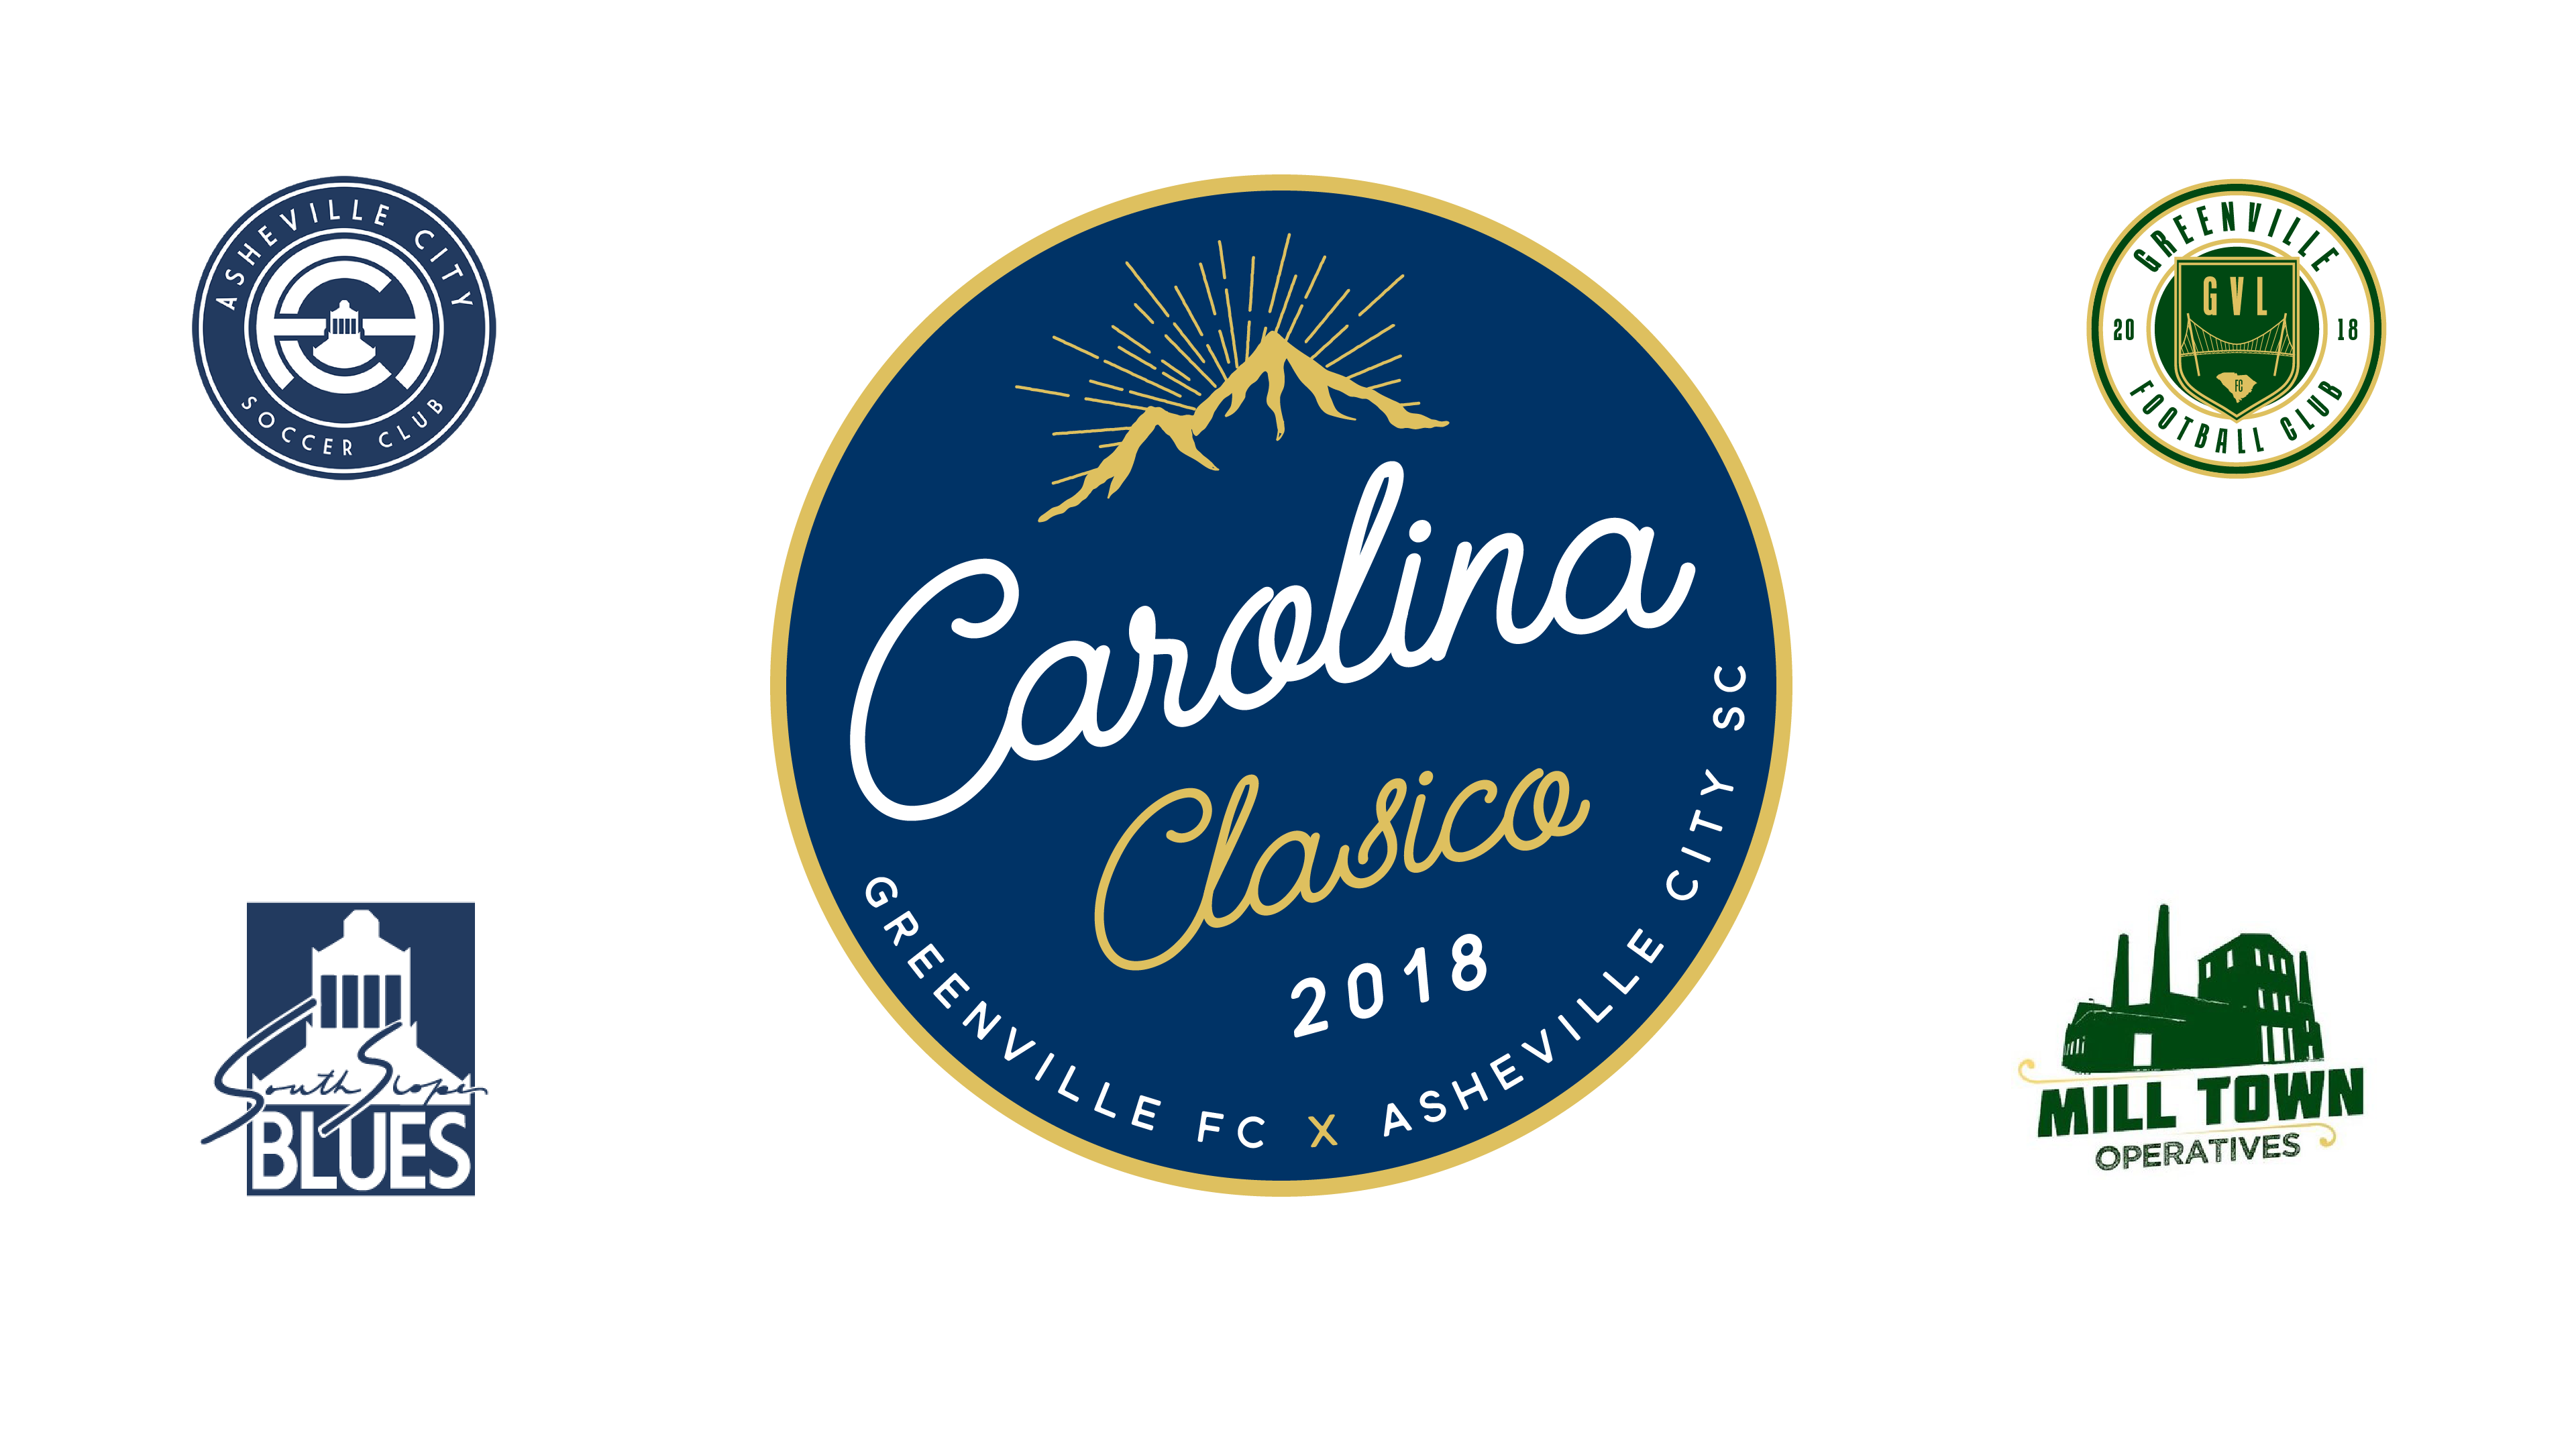 GVLFC AND ACSC ANNOUNCE FIRST INAUGURAL CAROLINA CLASICO